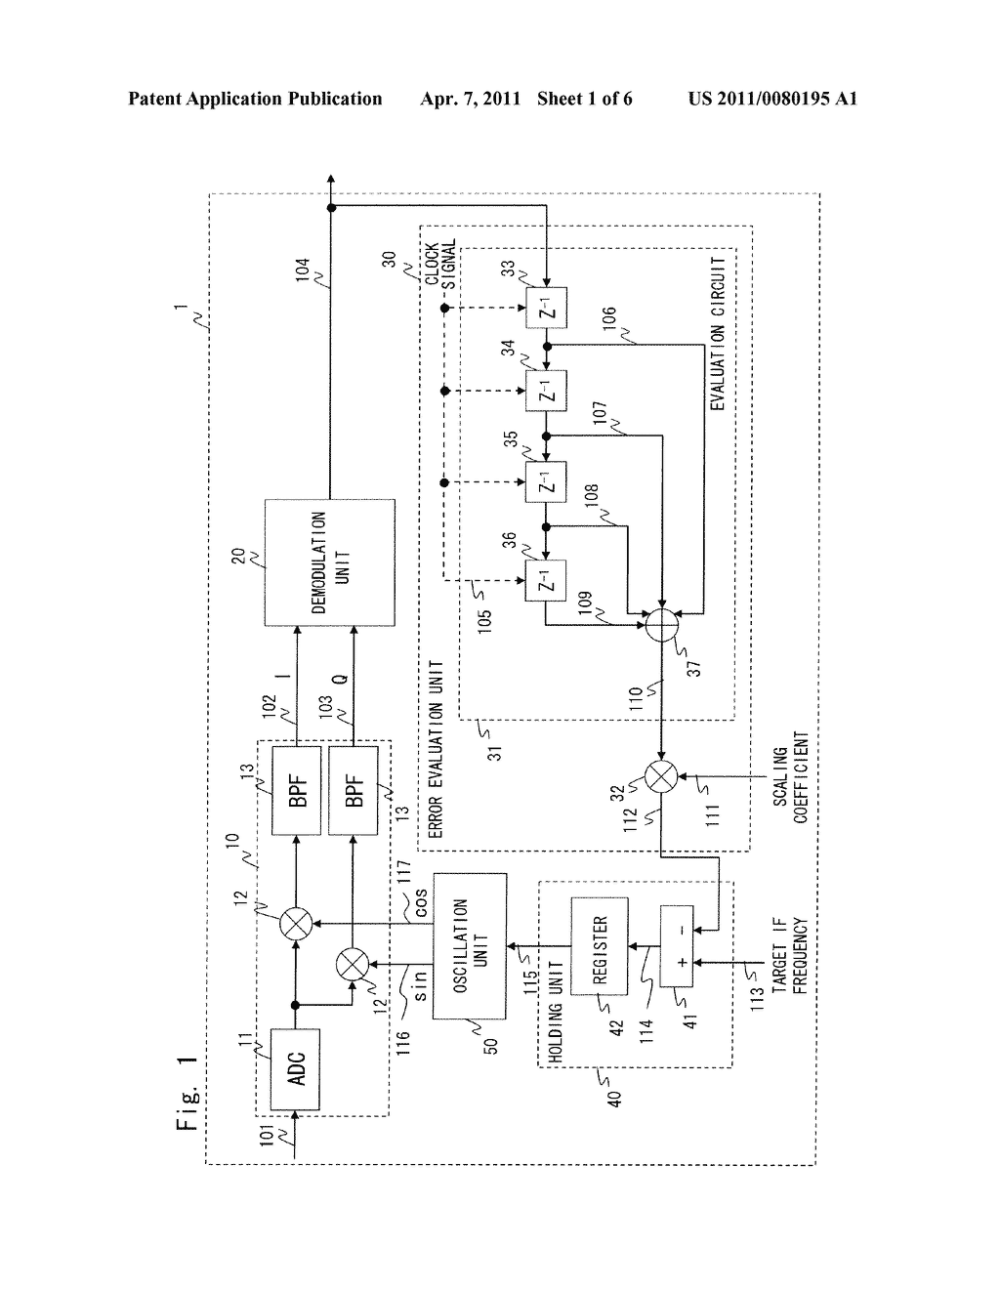 medium resolution of automatic frequency control circuit diagram schematic and image 02 for this control circuit presented in this schematic the frequencies